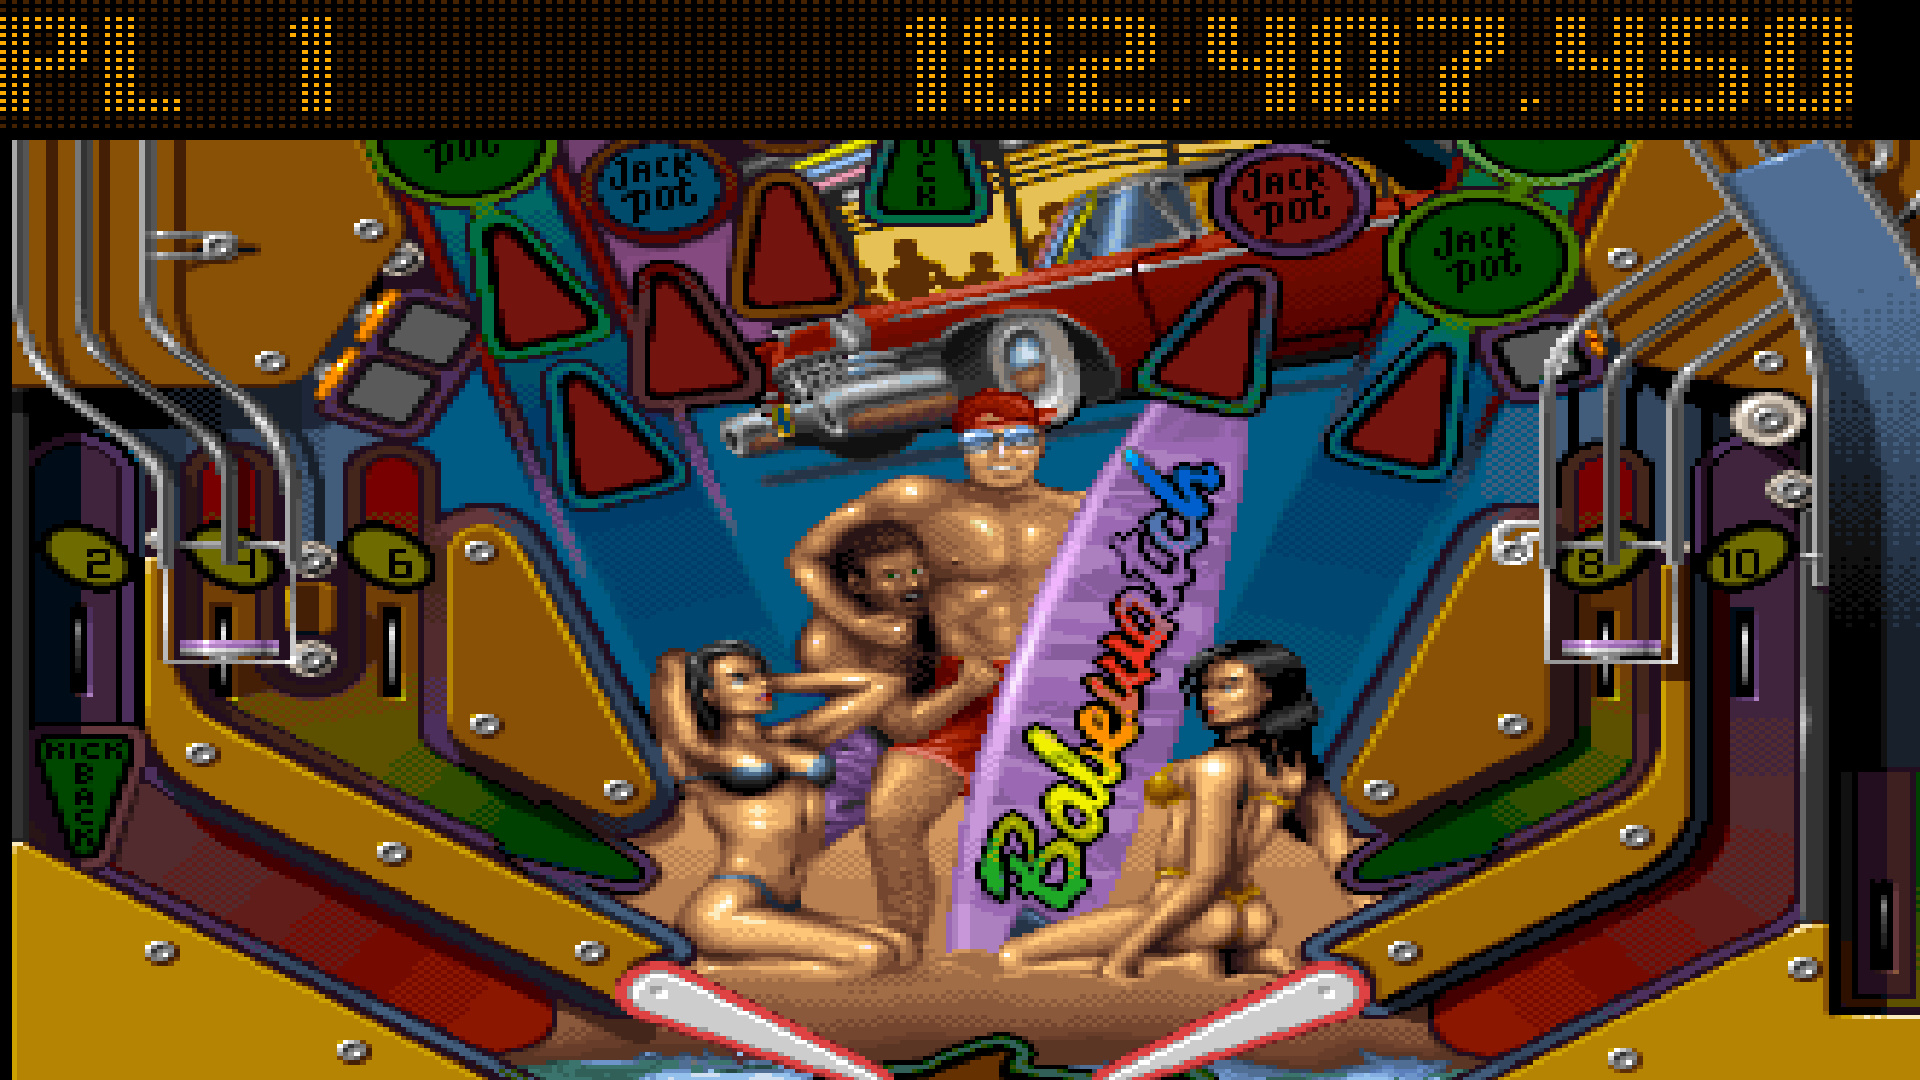 TheTrickster: Pinball Illusions: BabeWatch (Amiga Emulated) 182,407,450 points on 2015-07-18 22:08:17